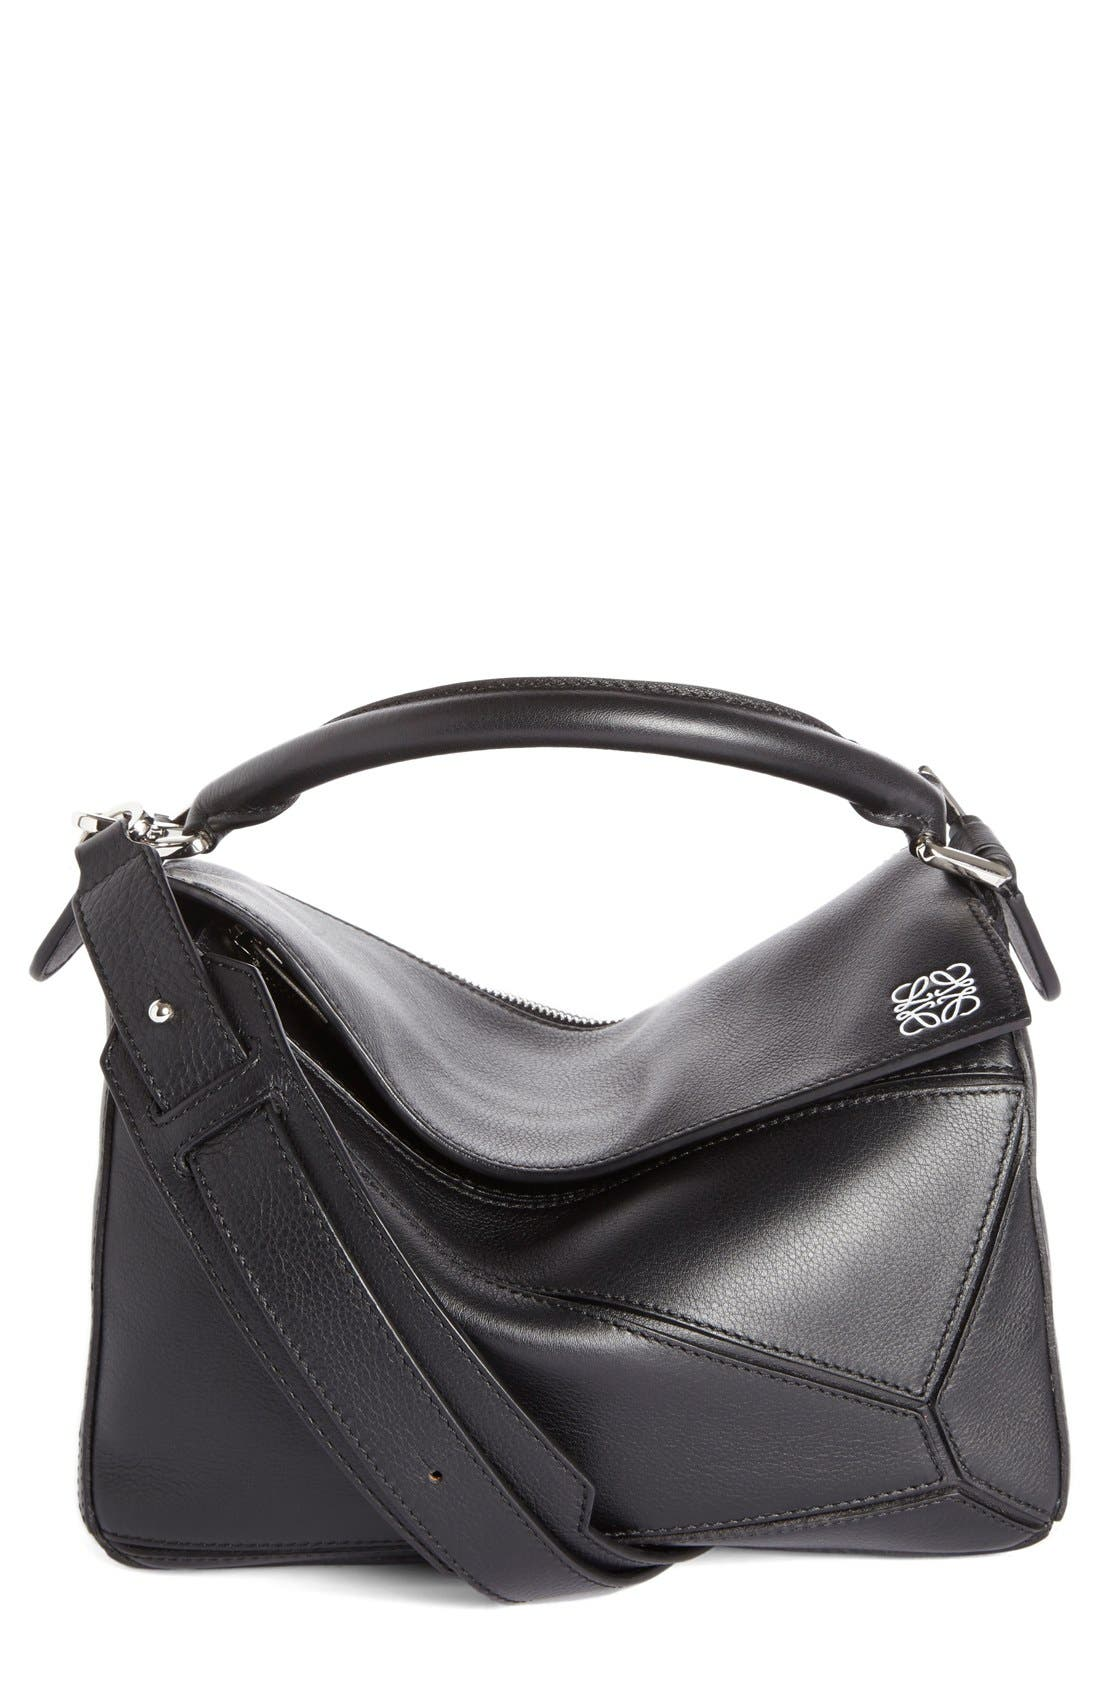 'Small Puzzle' Calfskin Leather Bag,                         Main,                         color,